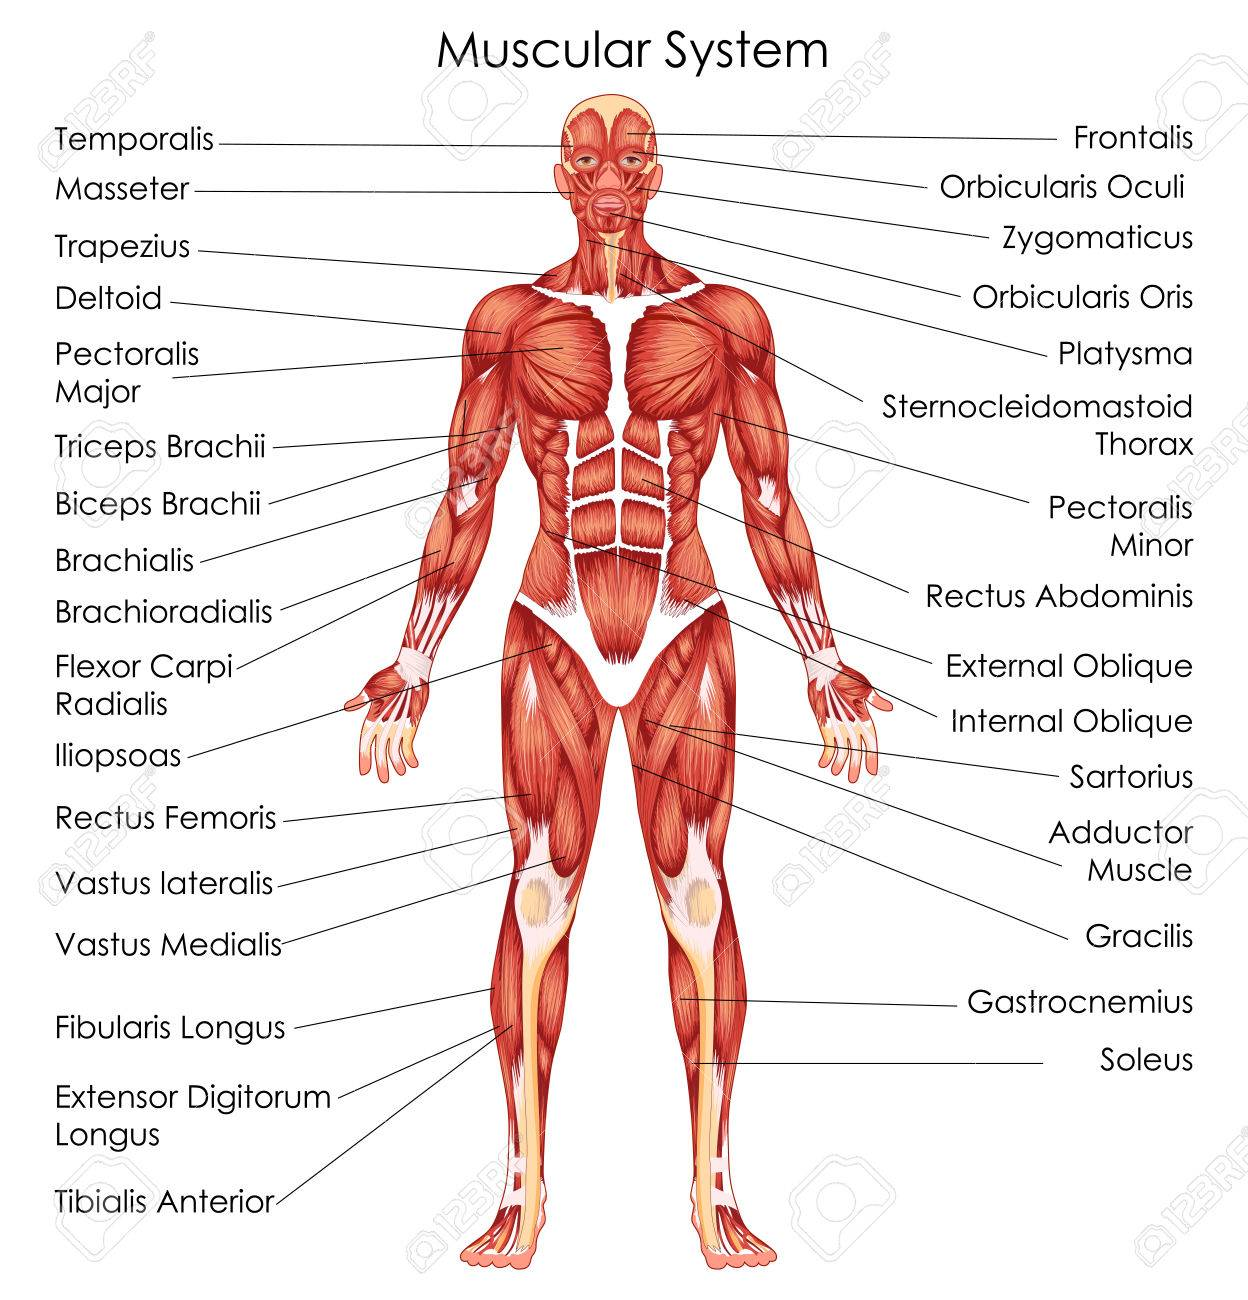 hight resolution of medical education chart of biology for muscular system diagram vector illustration stock vector 79651340